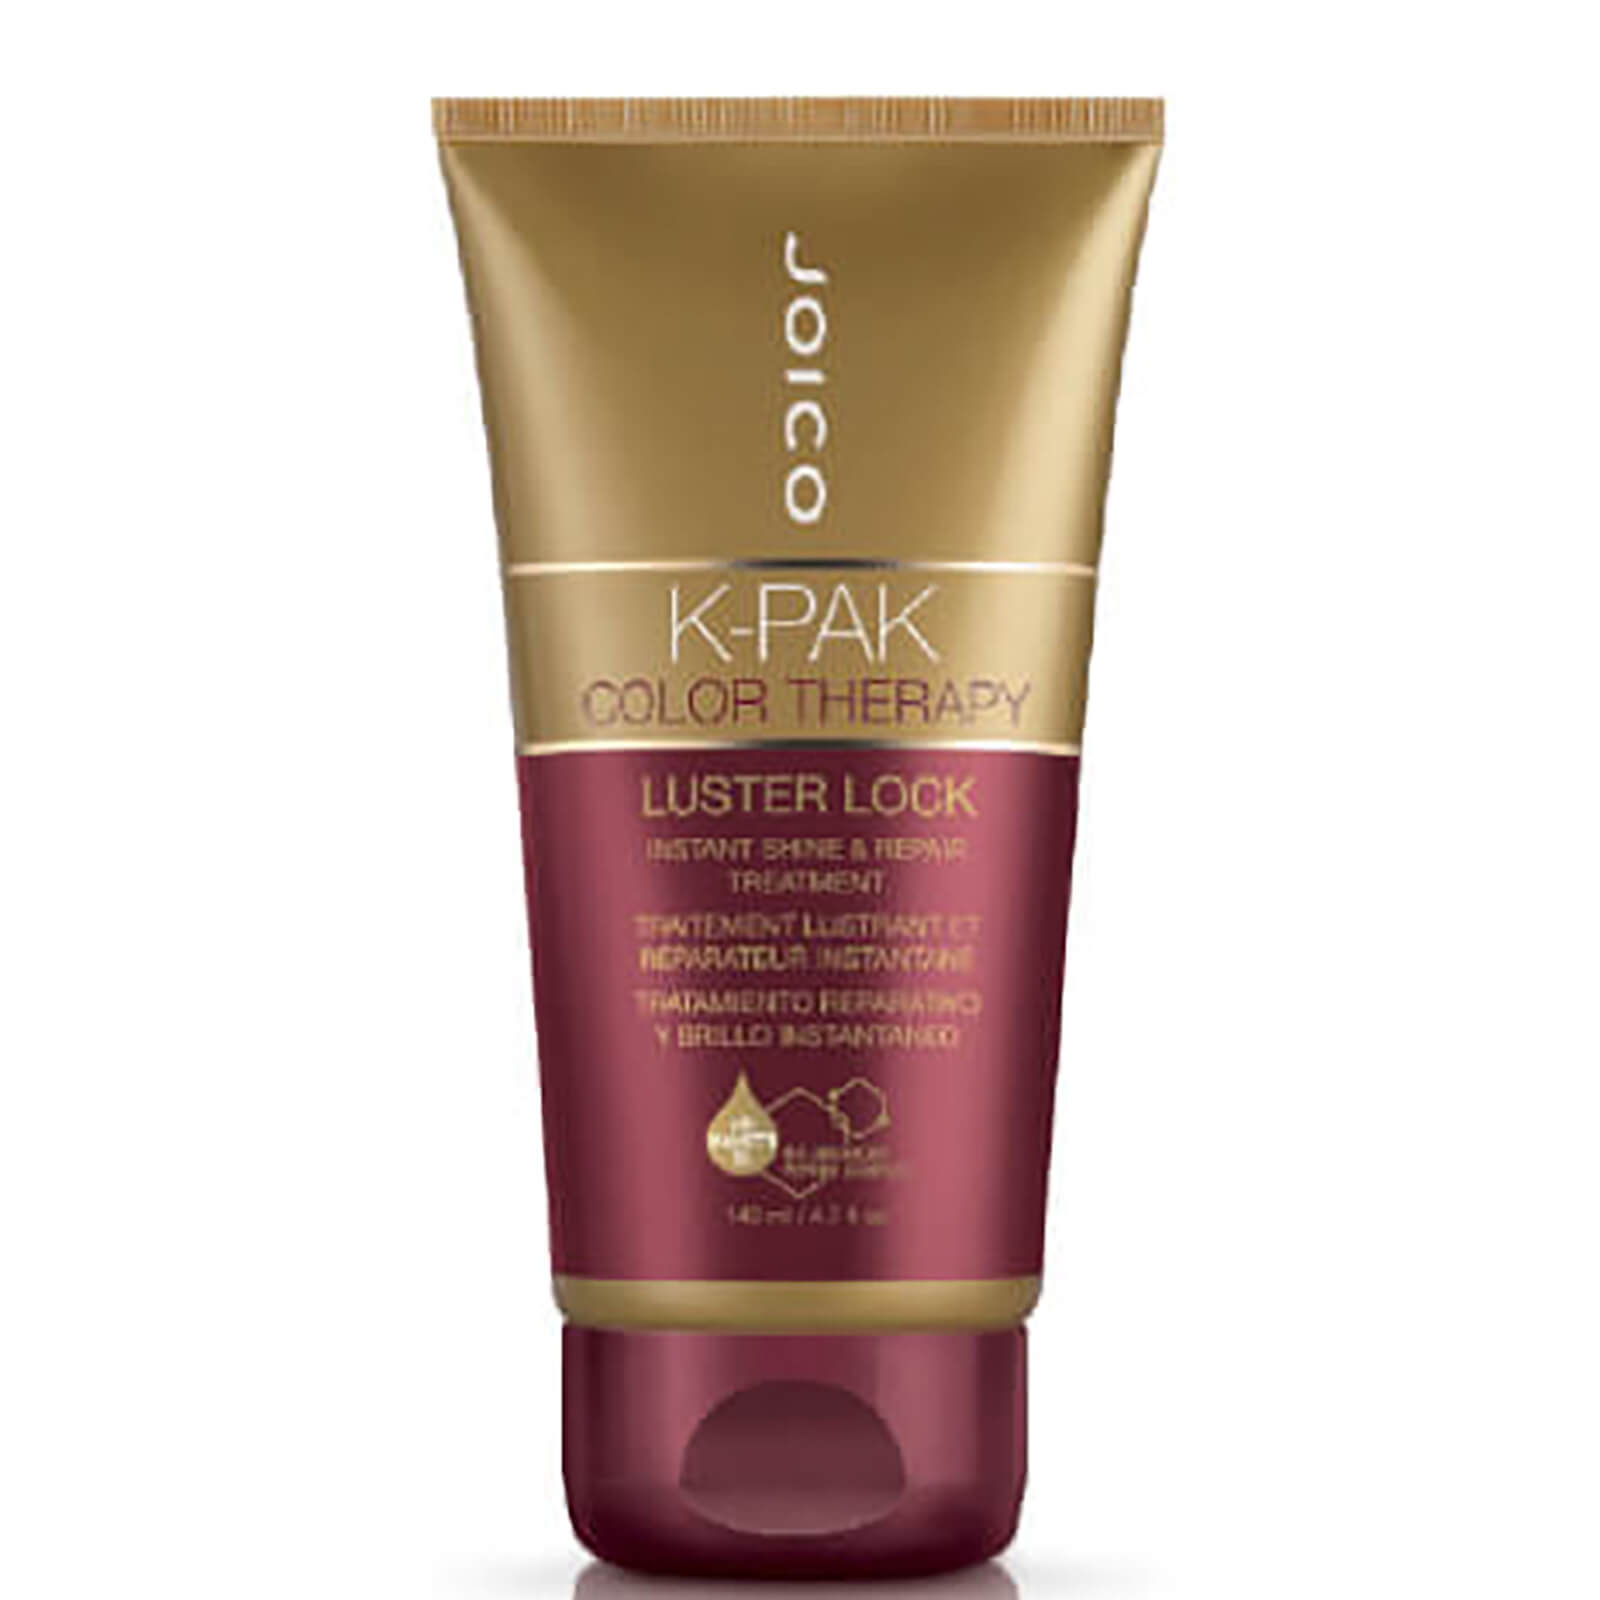 7463d9007f9 Joico K-Pak Colour Therapy Luster Lock Instant Shine and Repair Treatment  140ml | Free Shipping | Lookfantastic